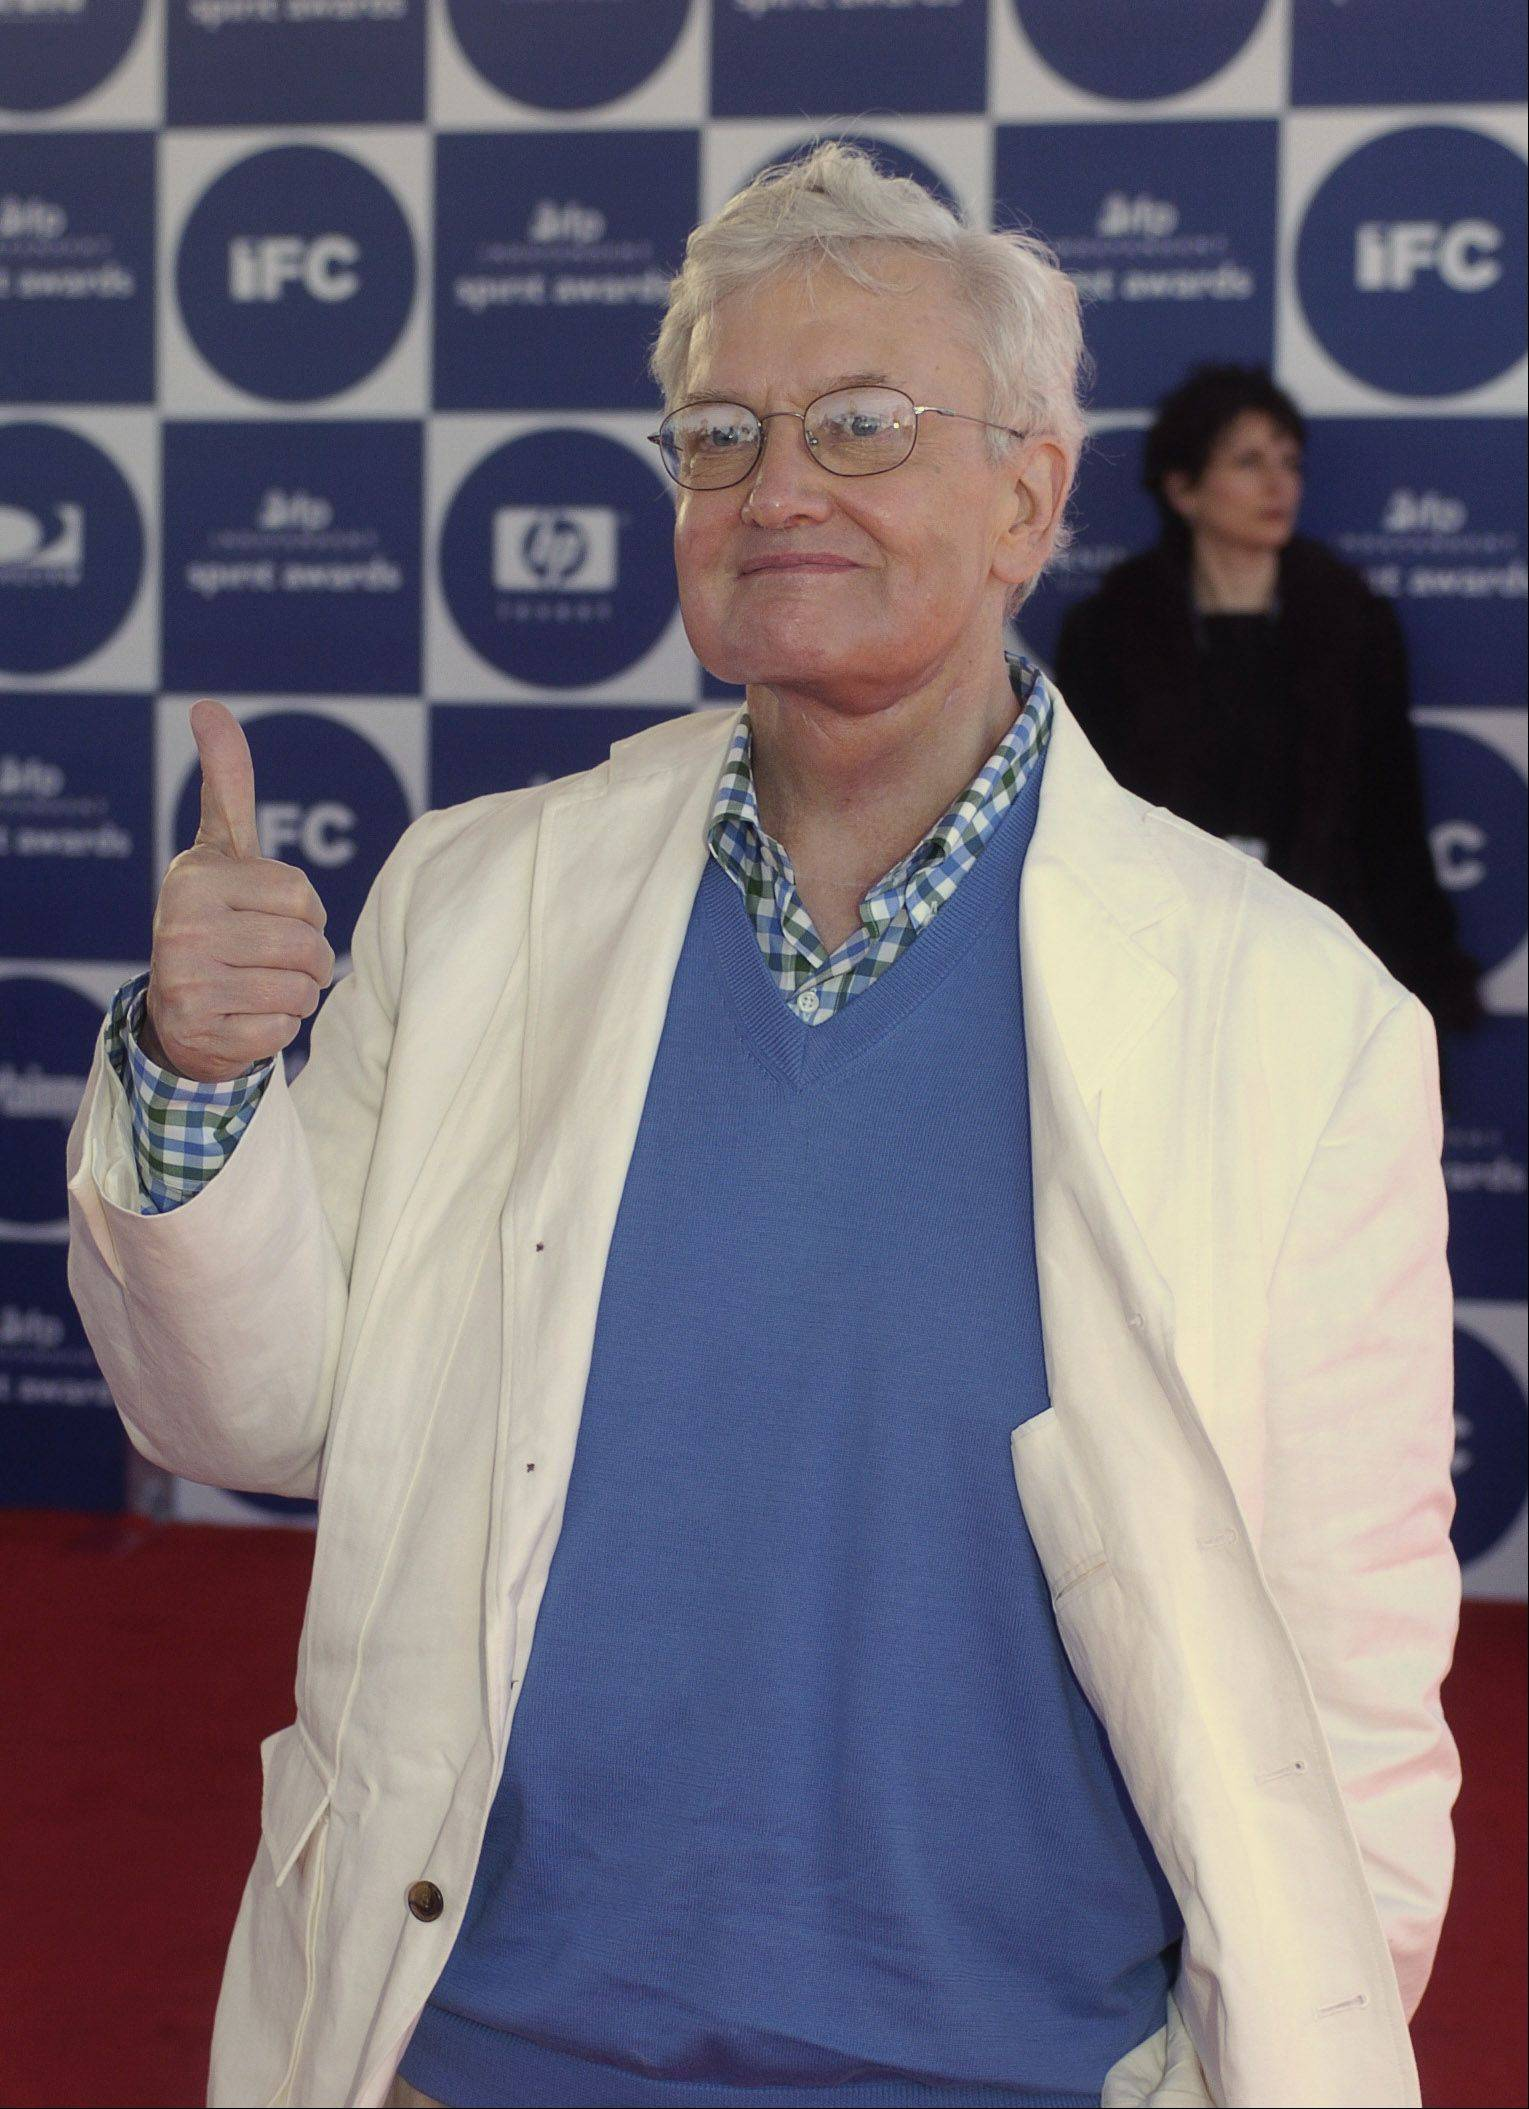 Roger Ebert gives a thumbs up as he arrives for the 2004 IFP Independent Spirit Awards In Santa Monica, Calif., on Feb. 28, 2004.